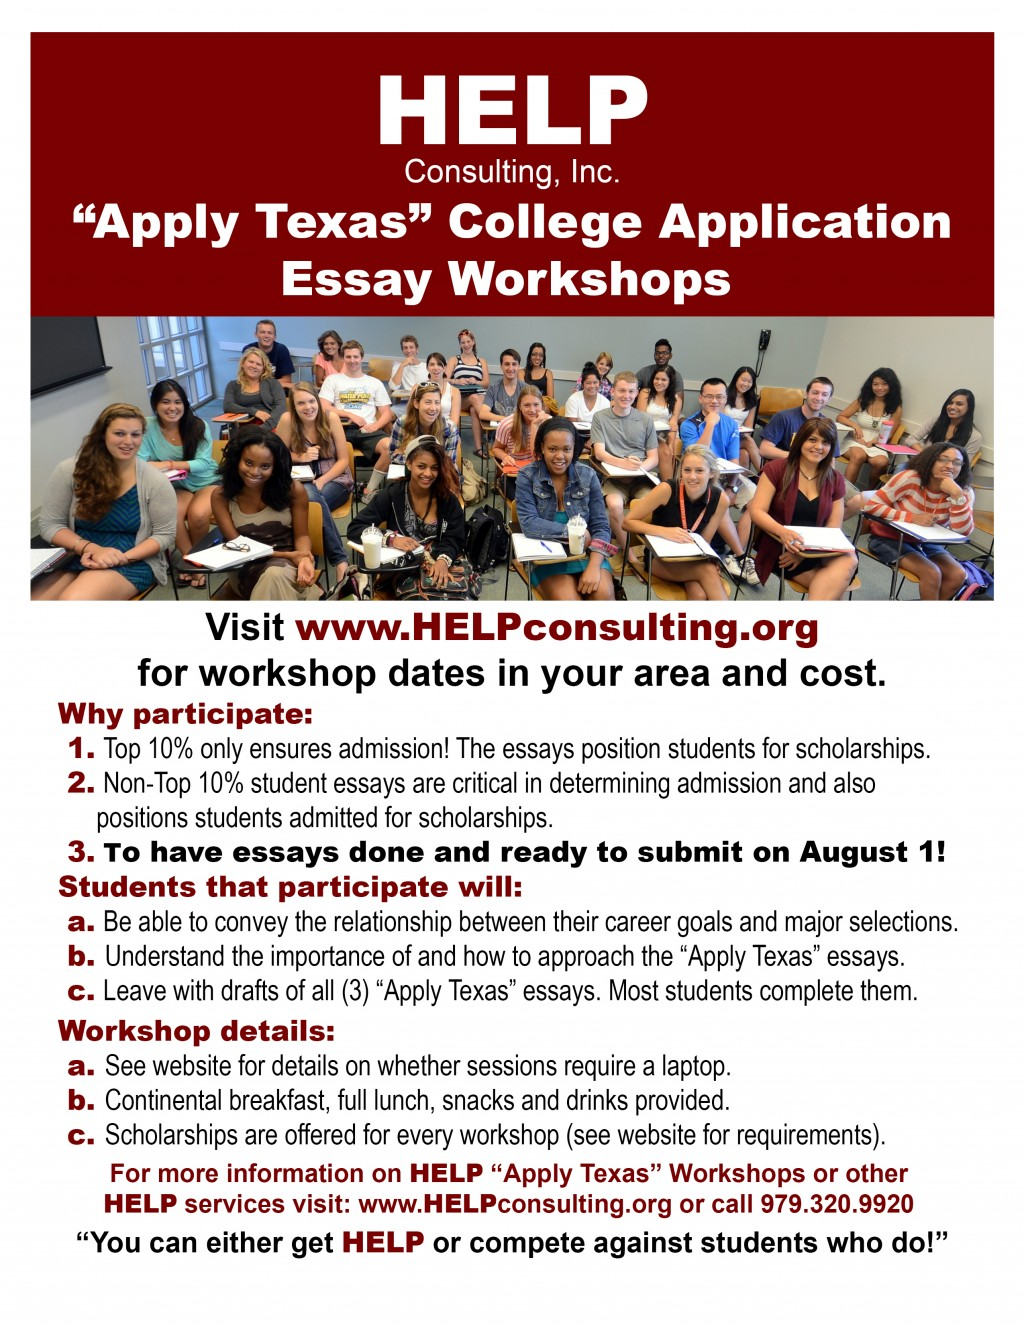 011 Apply Texas Essay Prompts Example Help Ap Tx Flyer Top Examples A B And C Large